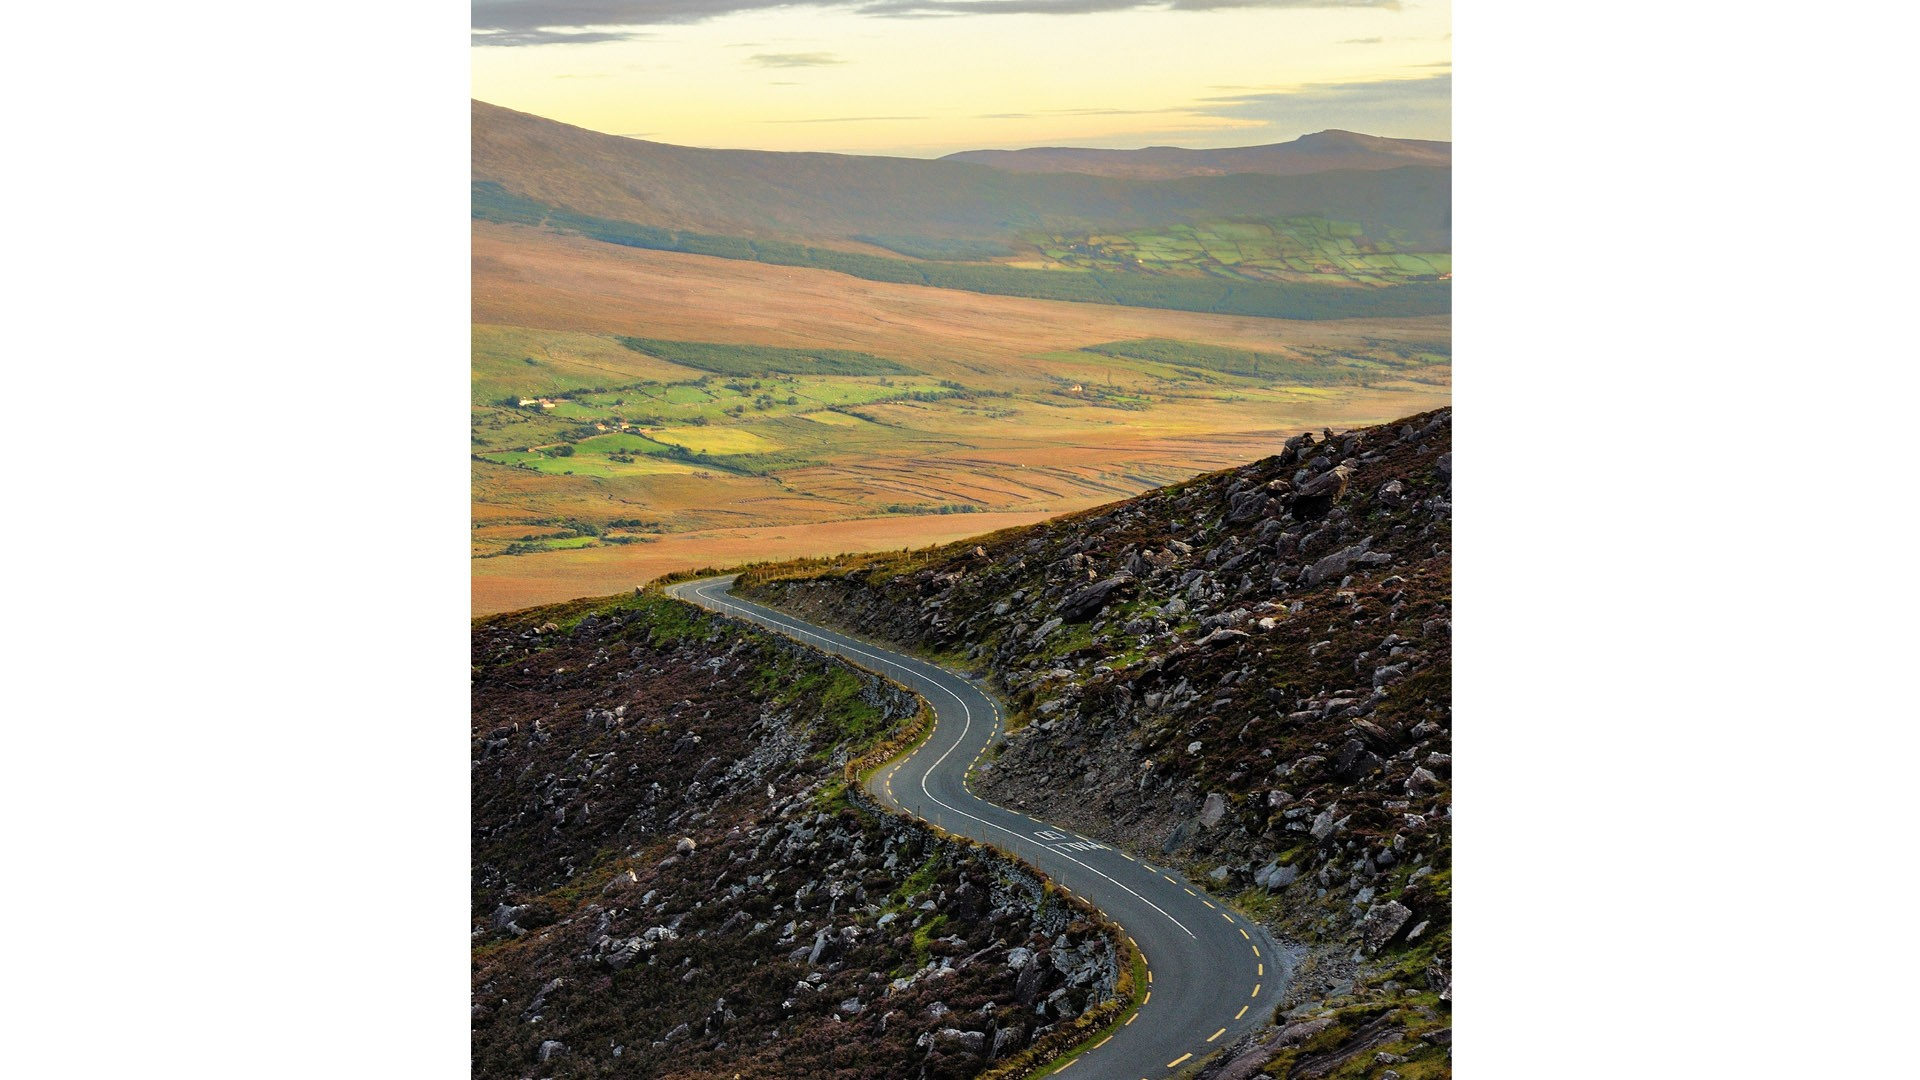 There are few straight roads on the Dingle Peninsula, Ireland